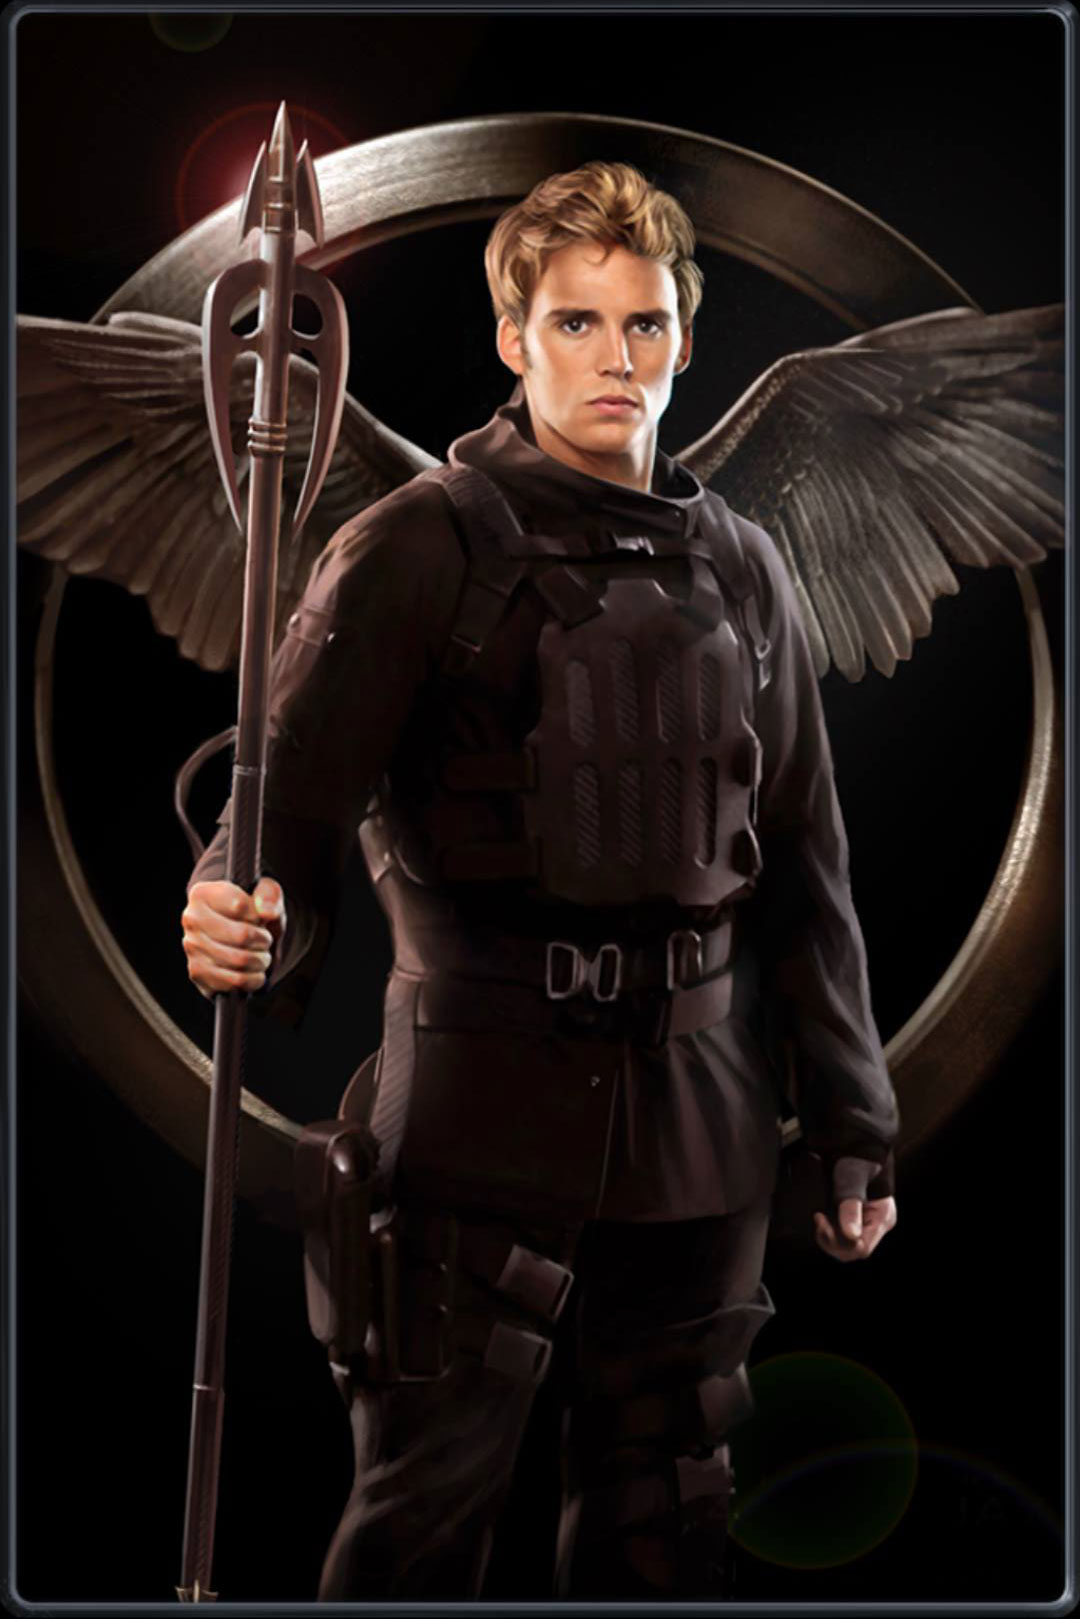 IN HONOR OF FINNICK, WHO SO WILLINGLY SACRIFICED HIS LIFE ... |Mockingjay Finnick Odair